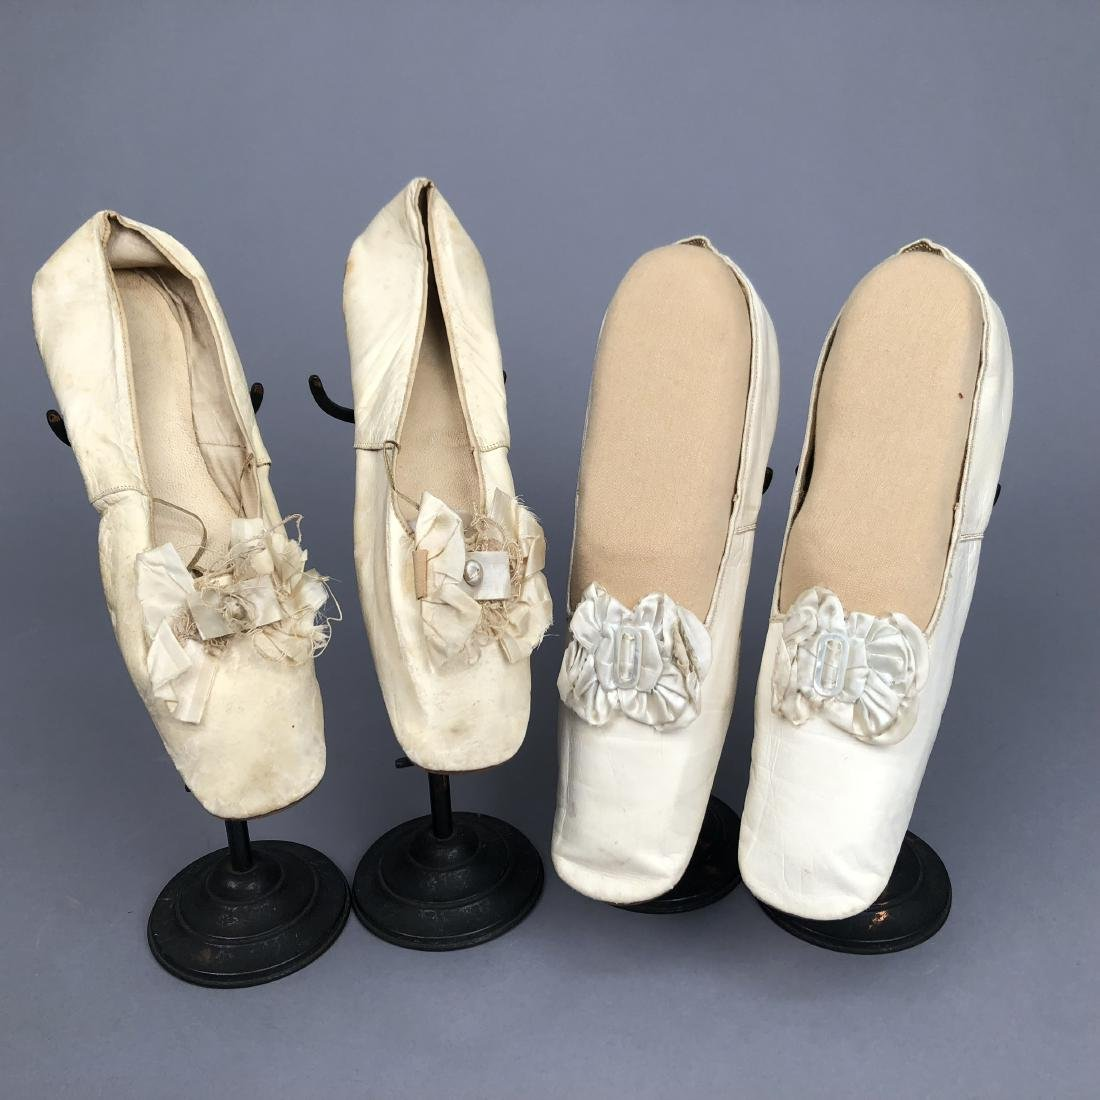 TWO PAIR LEATHER SLIPPERS with SILK BOW, 1830s - 1850s